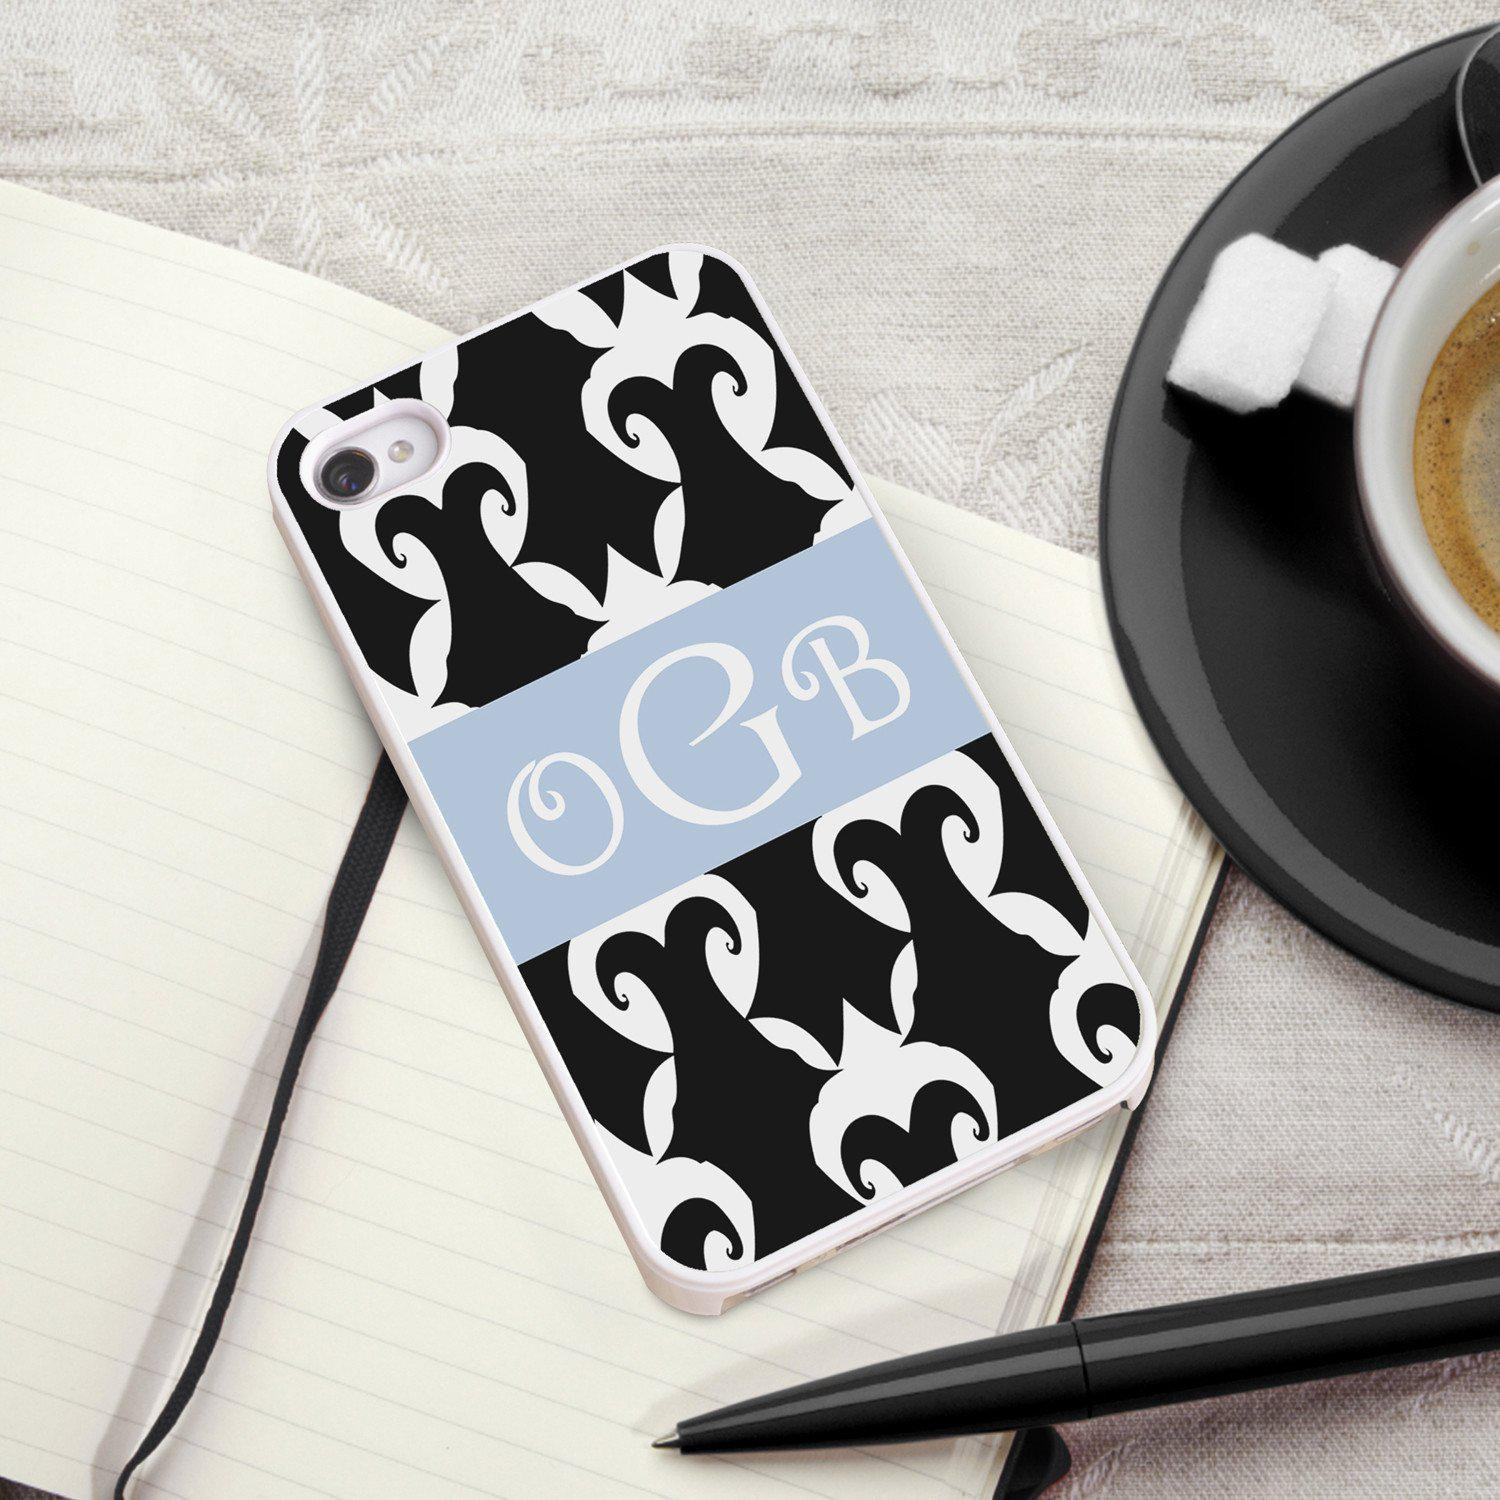 Personalized White Trimmed Phone Cover - 3 letter monogram